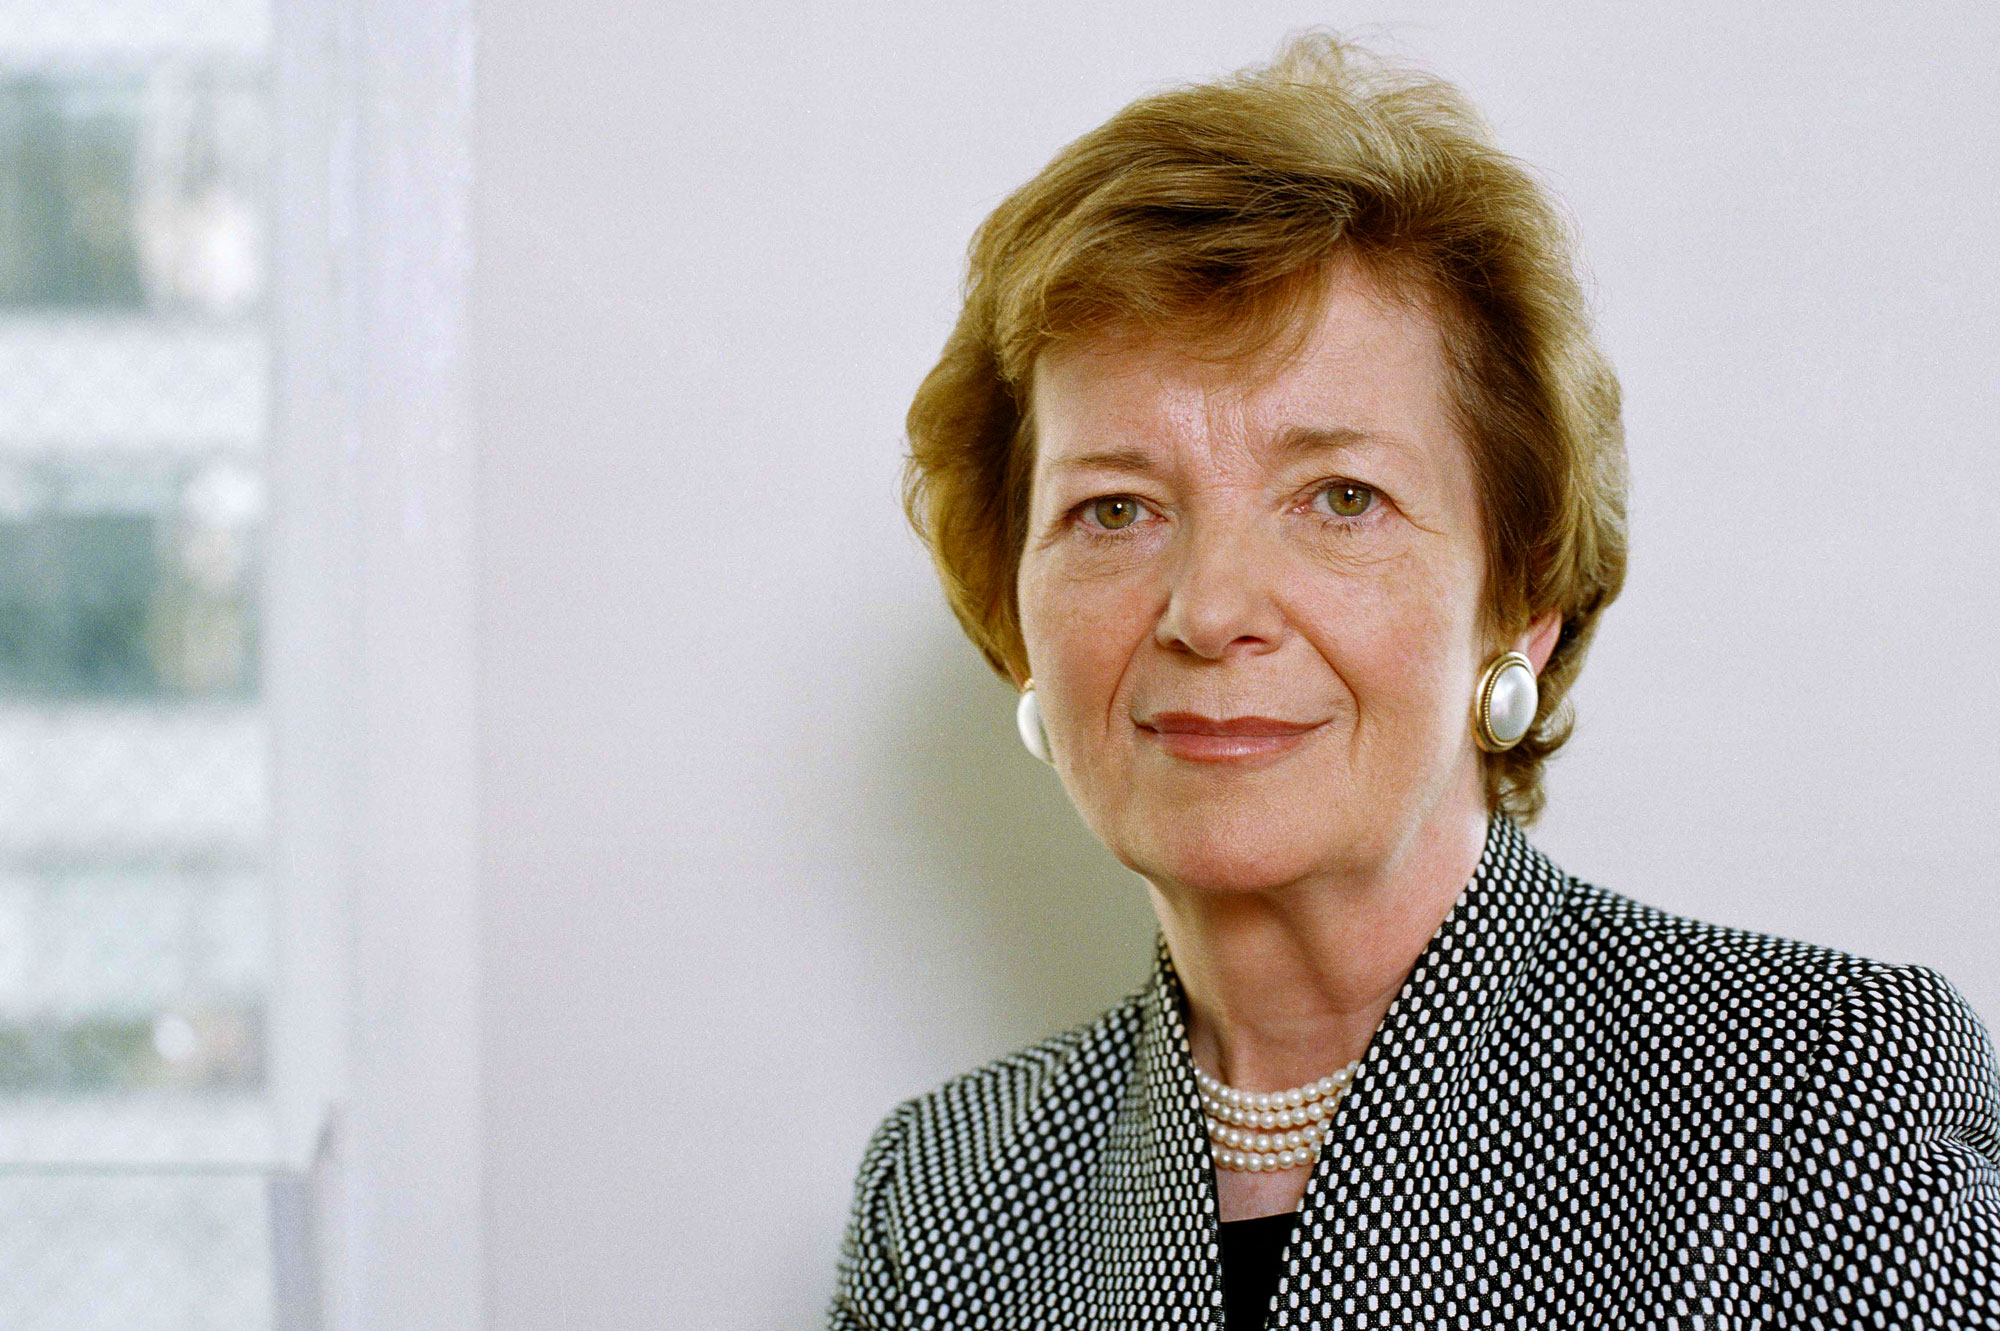 Statement by Mary Robinson, Special Envoy of the Secretary-General to the Great Lakes Region of Africa